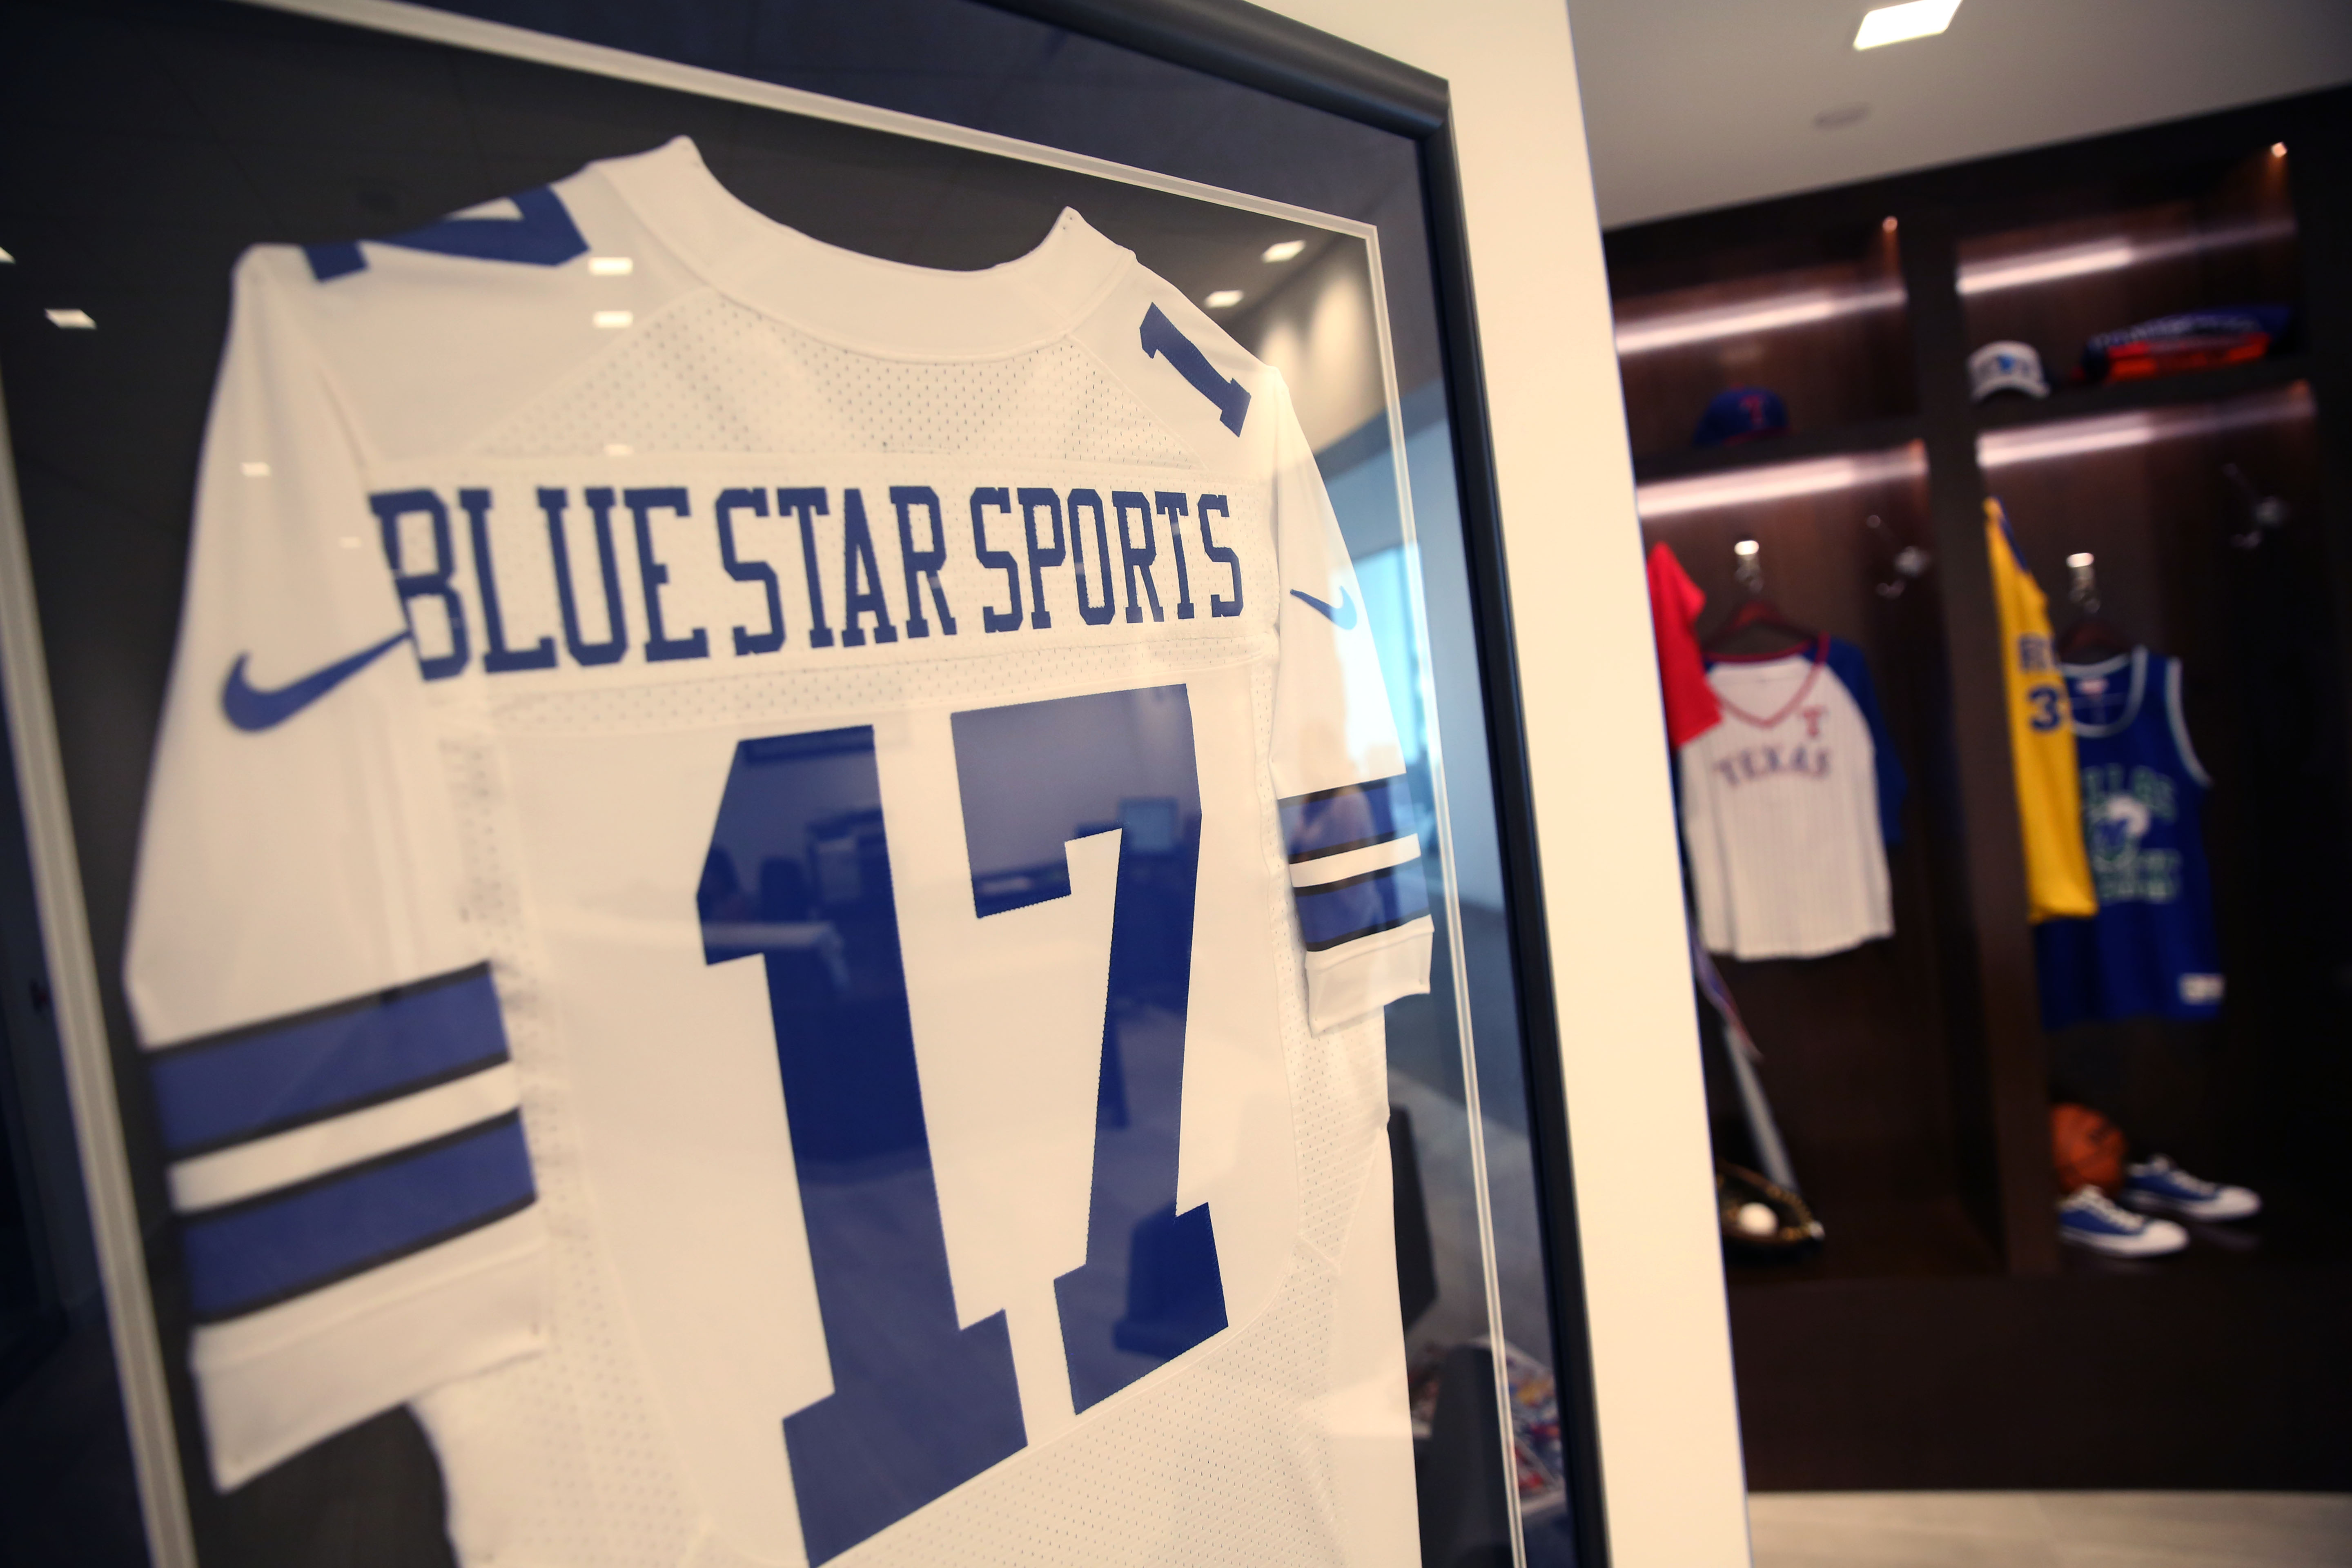 Cowboys who? Fast growing Blue Star Sports hangs up jersey on team